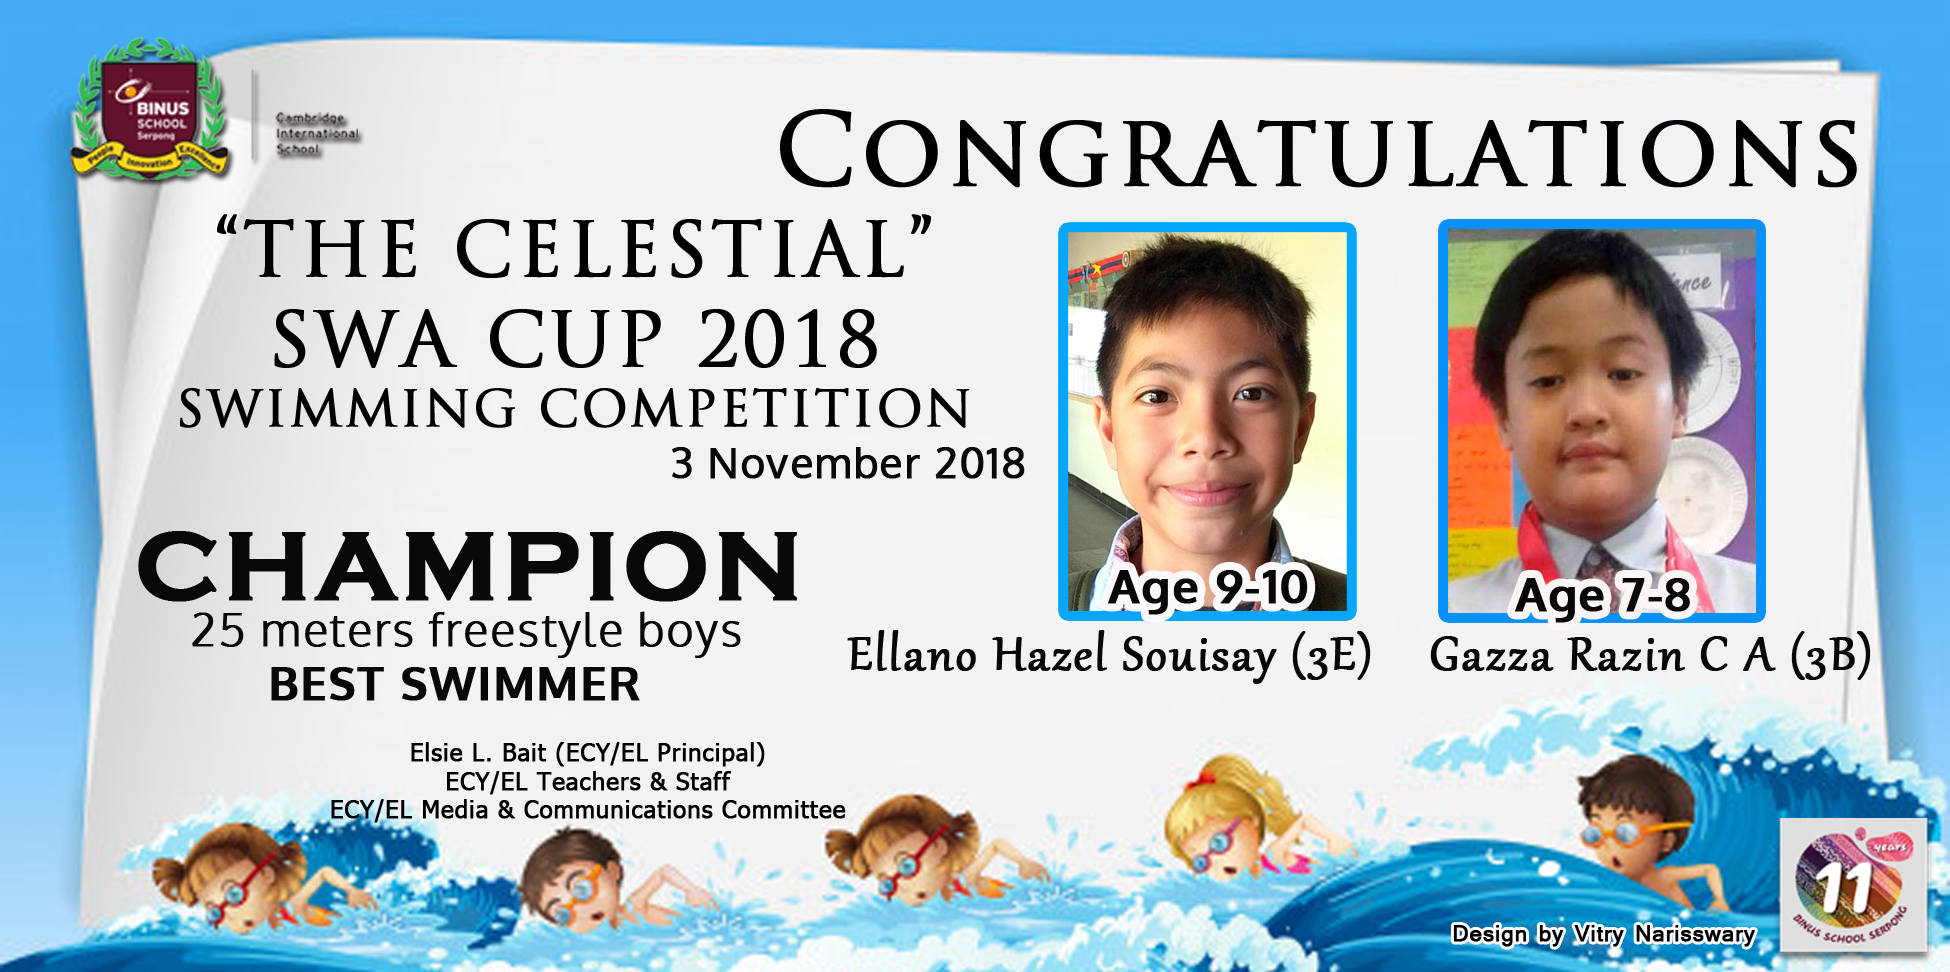 THE CELESTIAL SWA CUP 2018